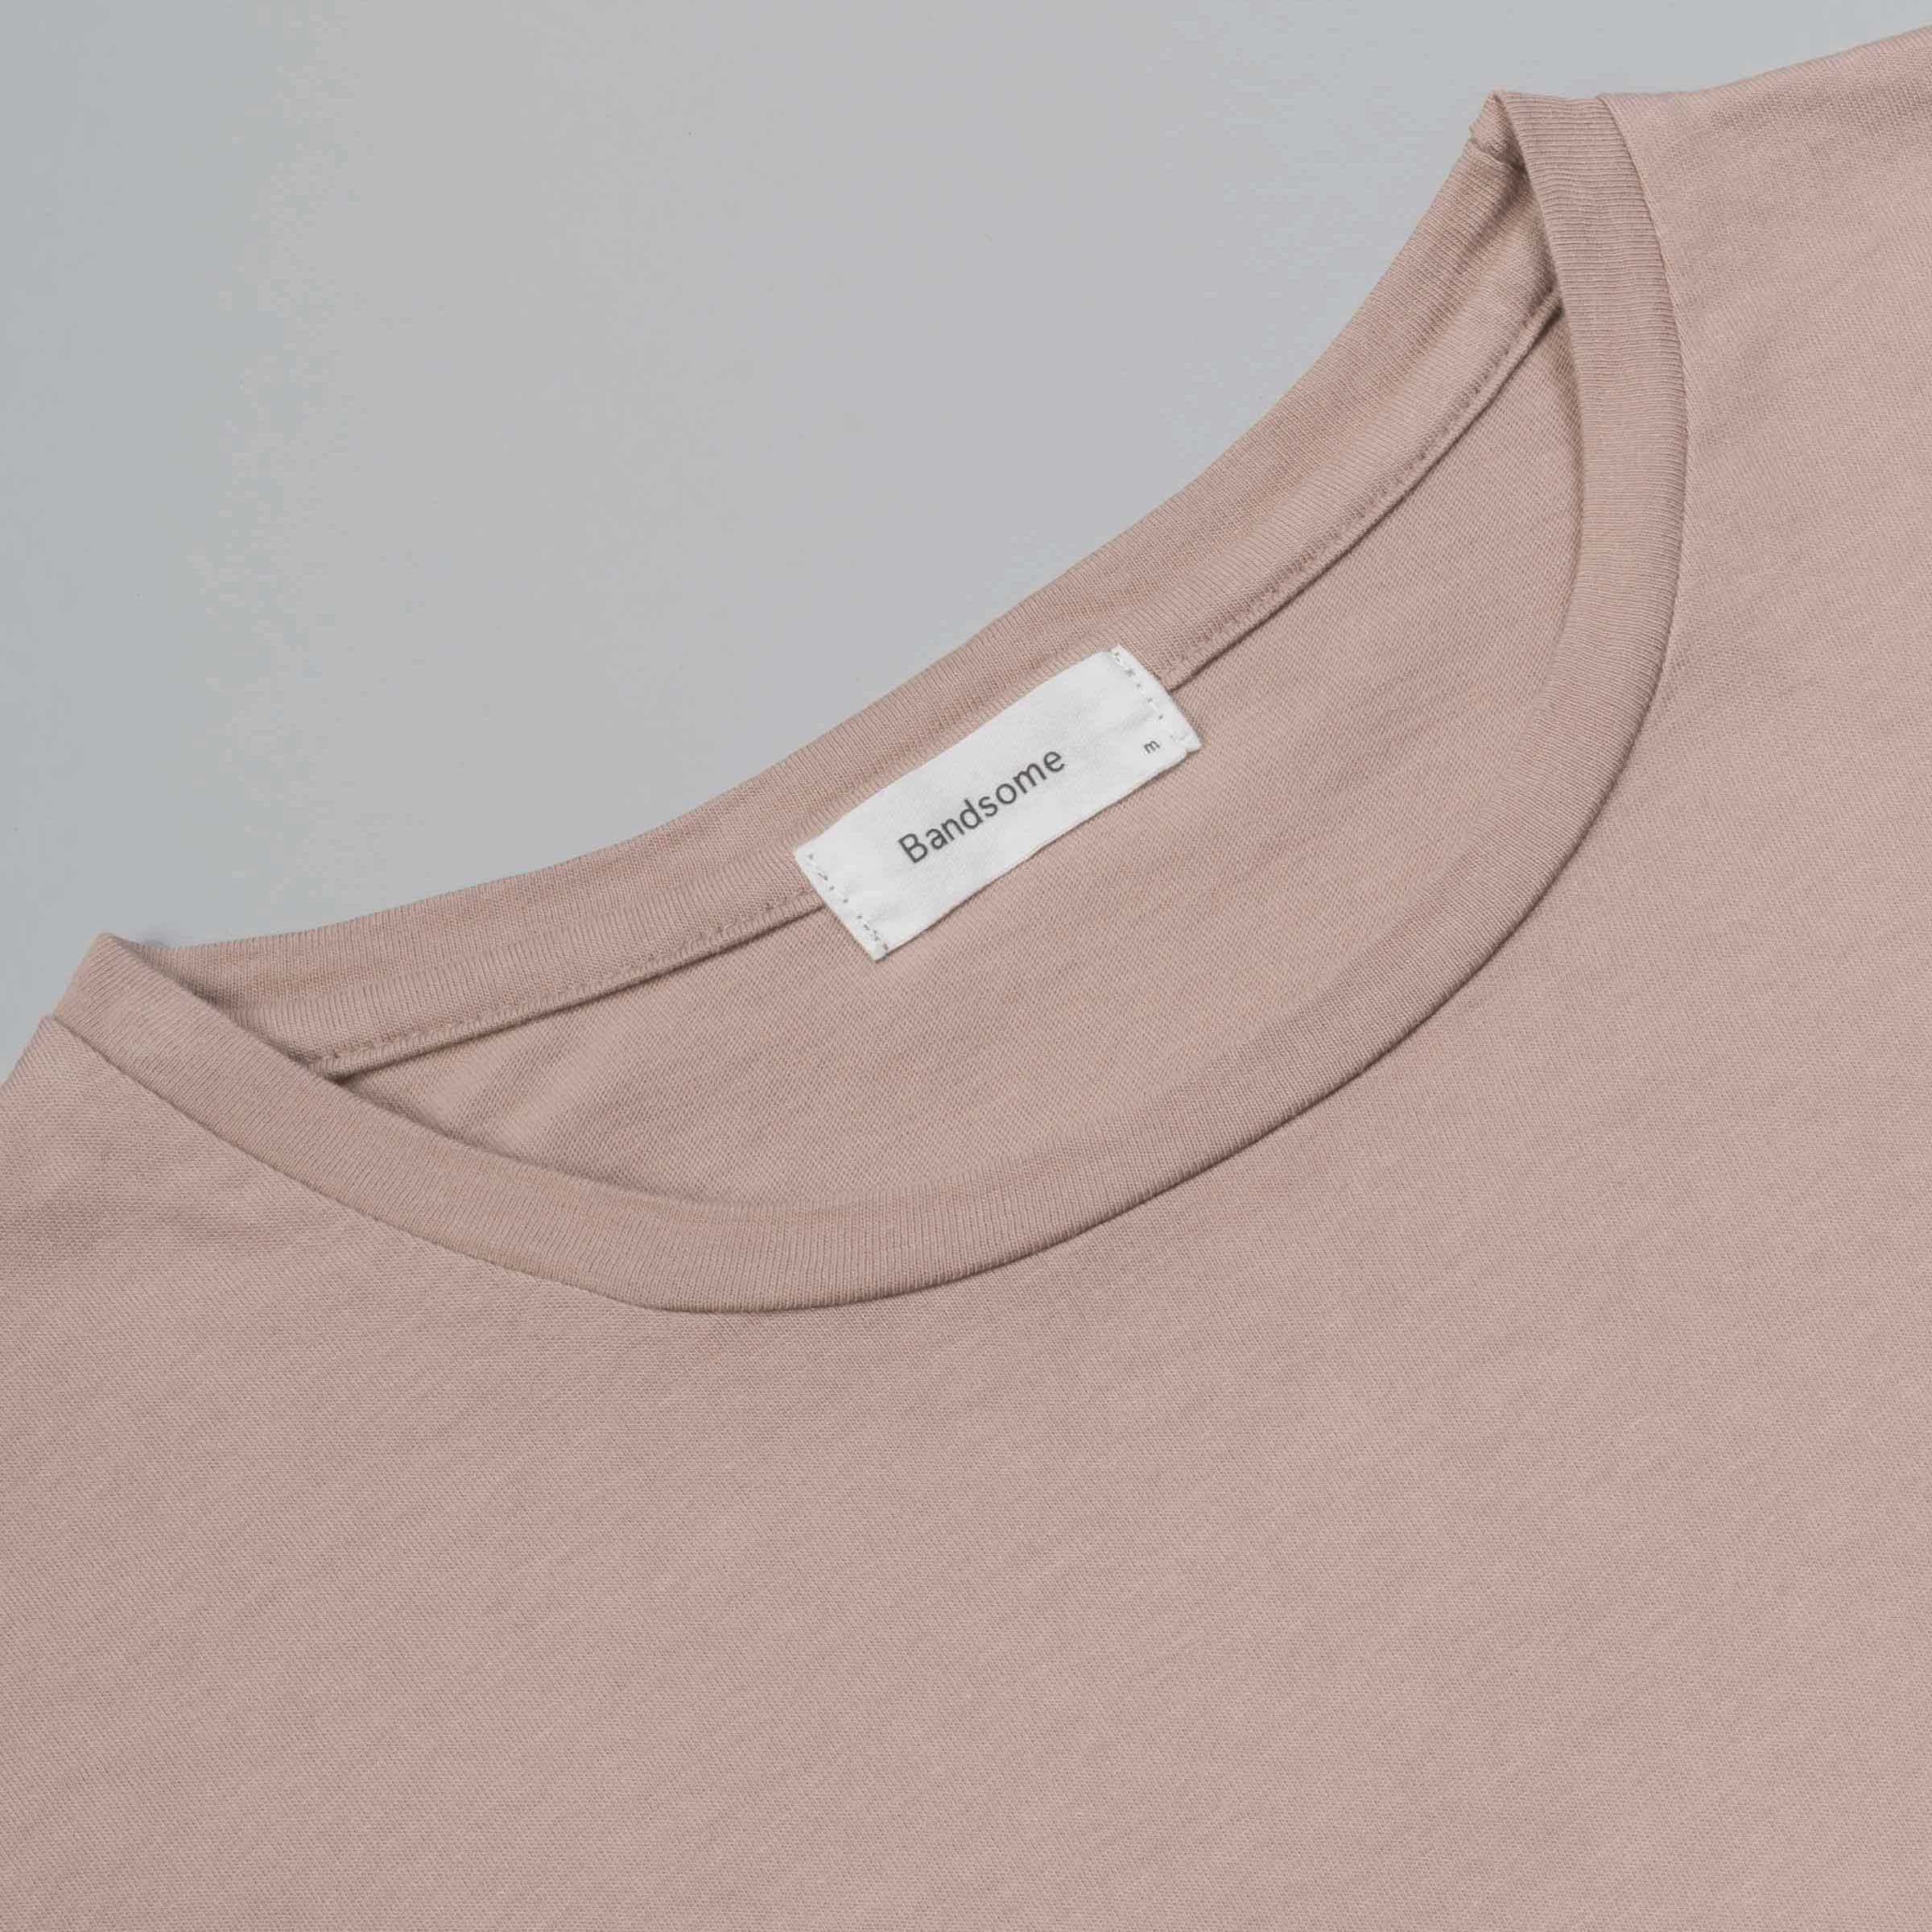 Classic Organic Cotton Tees from Bandsome